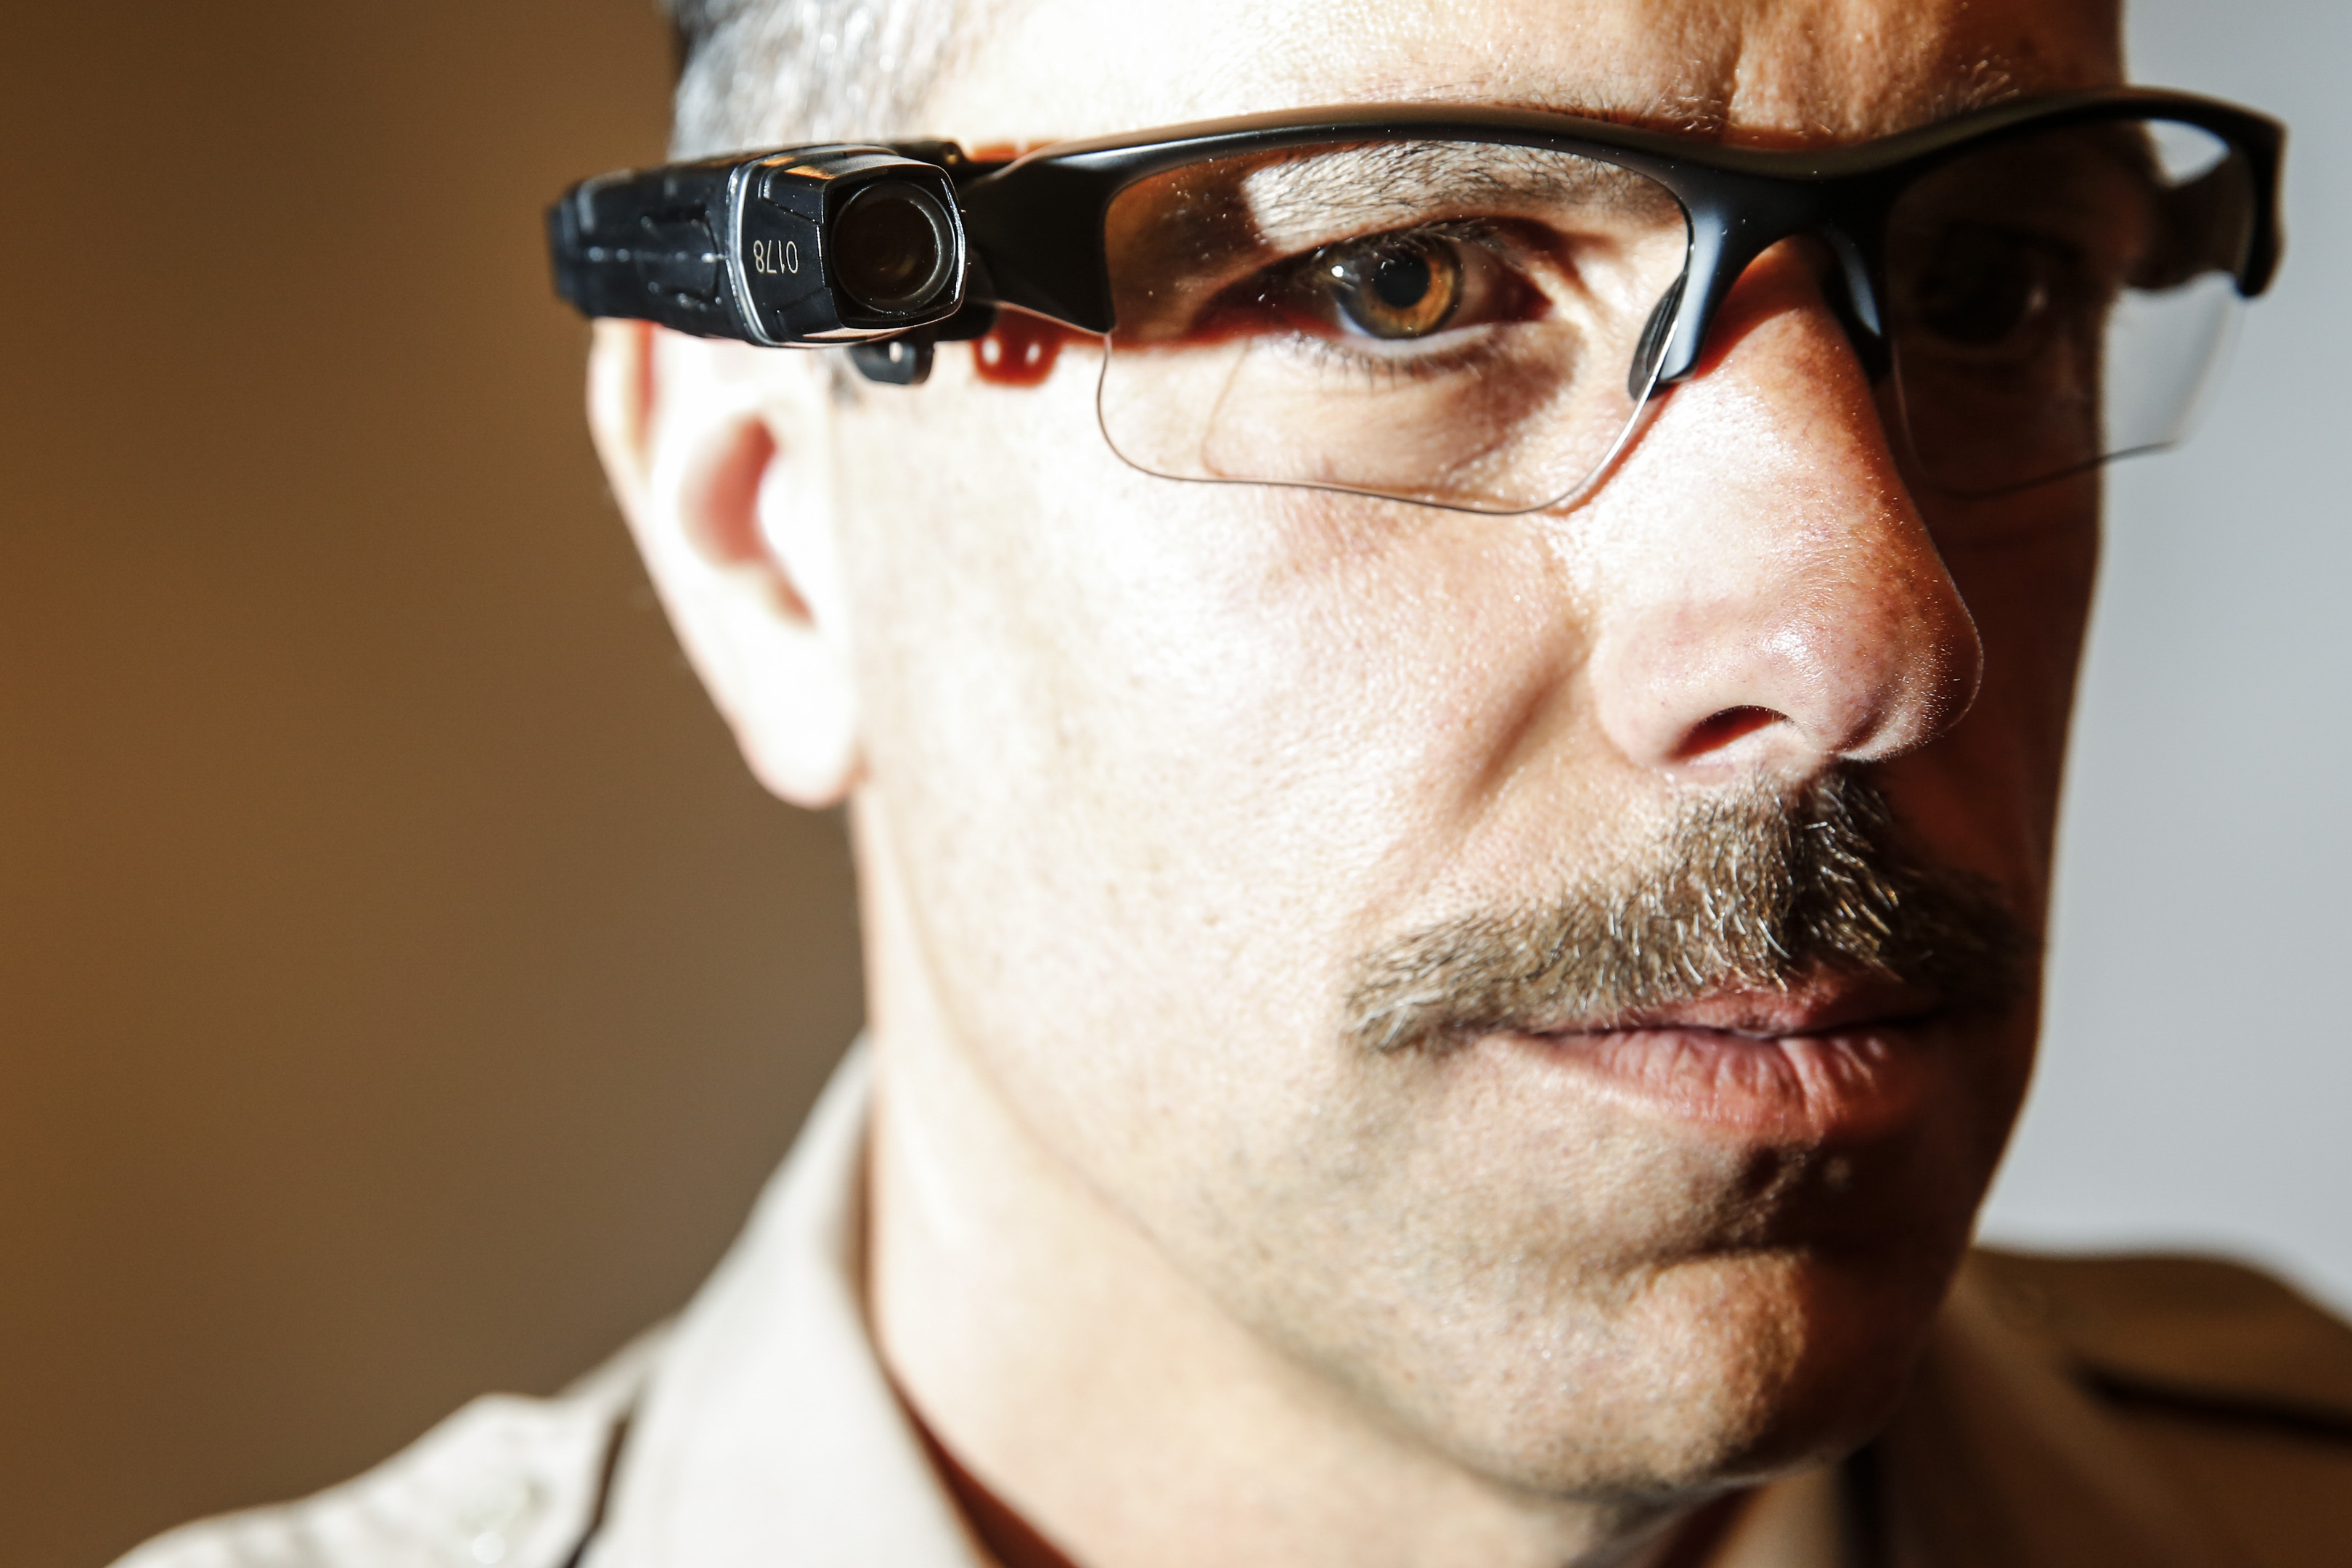 County of Los Angeles Sheriff's Lt. Chris Marks poses wearing the Taser Axon Flex, on-officer camera system attached to glasses in Monterey Park on Sept. 17, 2014.